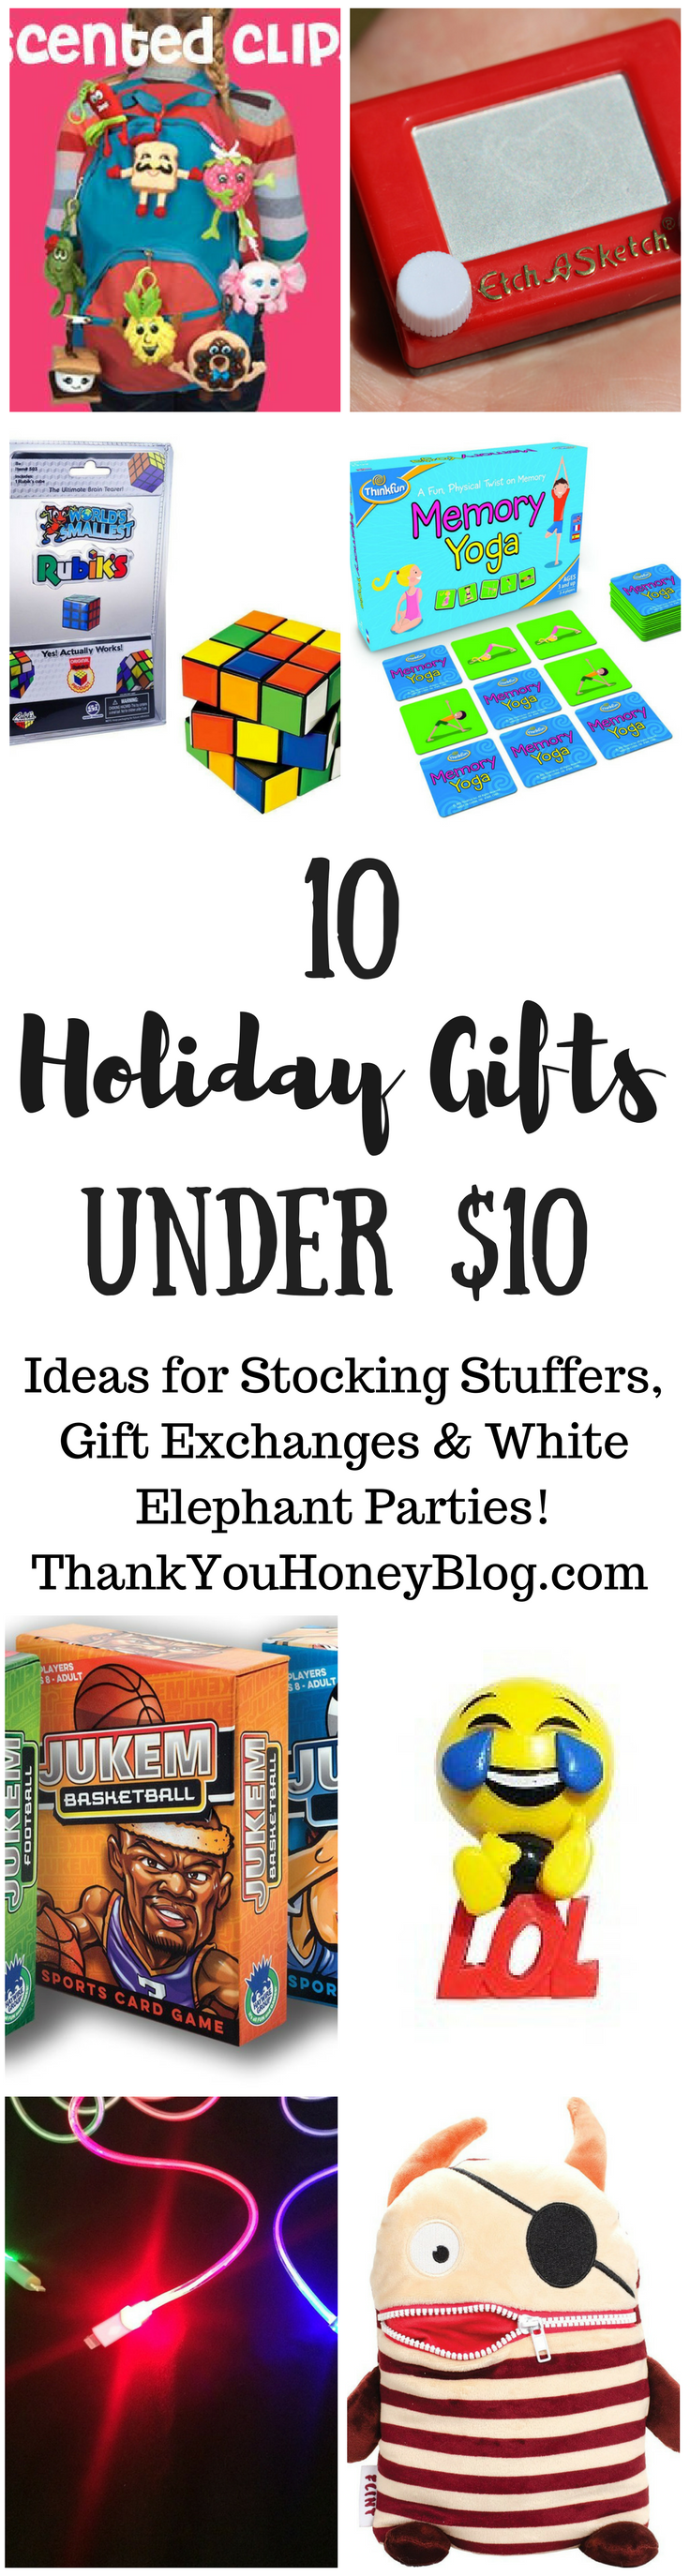 10 Holiday Gifts Under $10